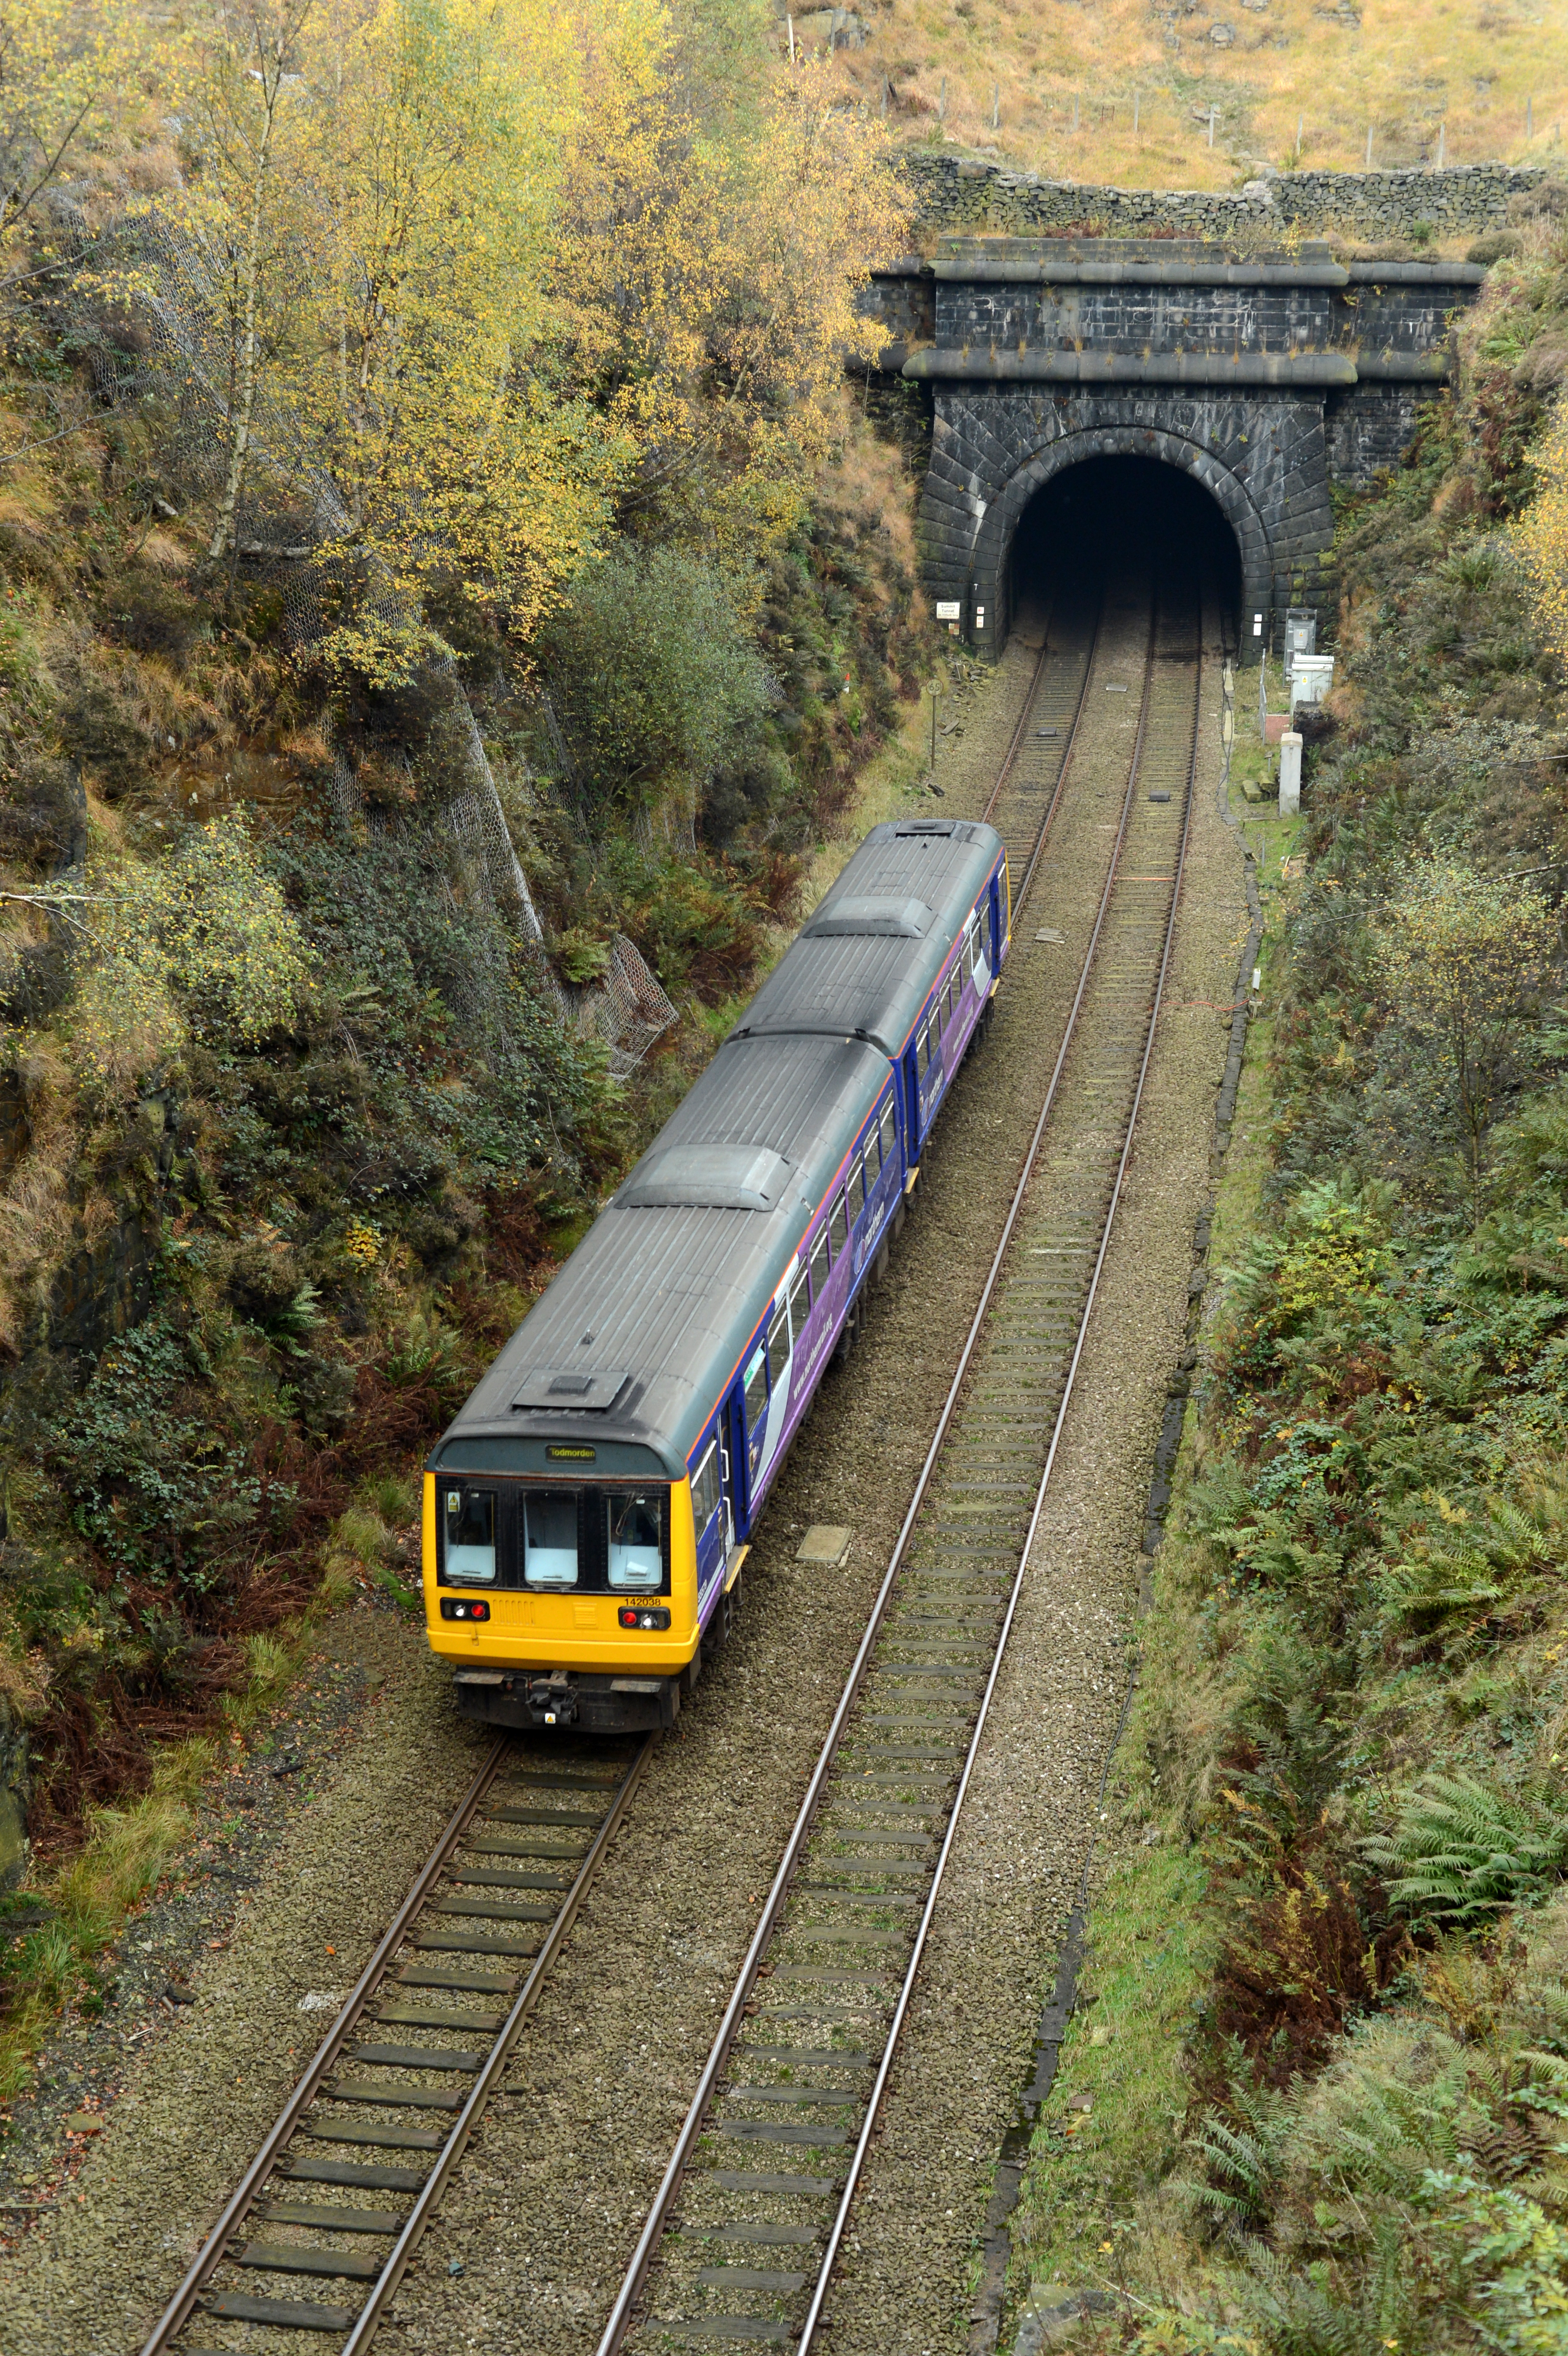 DG199592. 142038. Summit tunnel. 31.10.14.